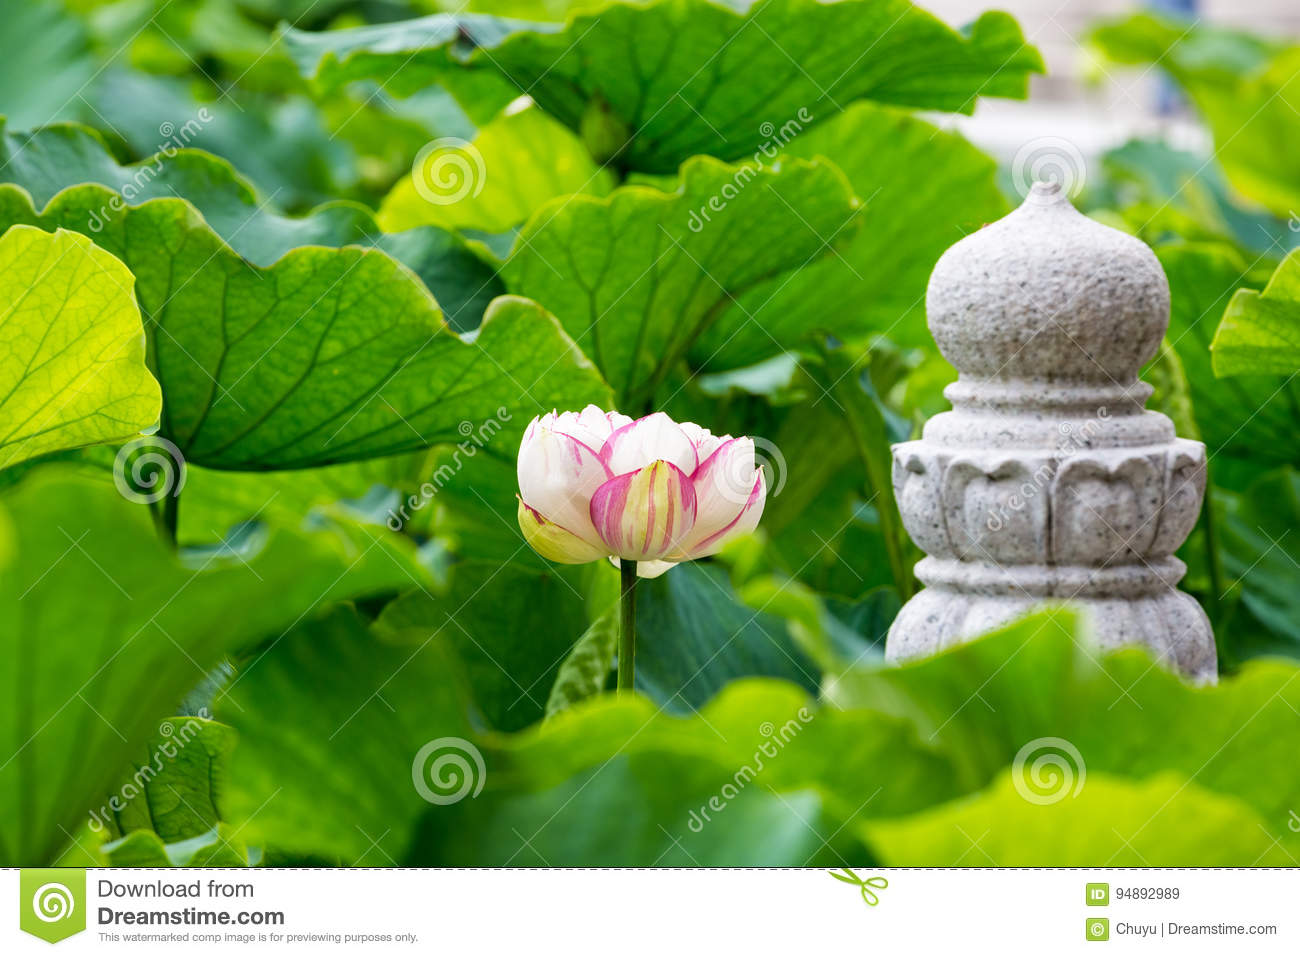 Buddha lotus flower stock image image of lotus petal 94892989 buddha lotus flower izmirmasajfo